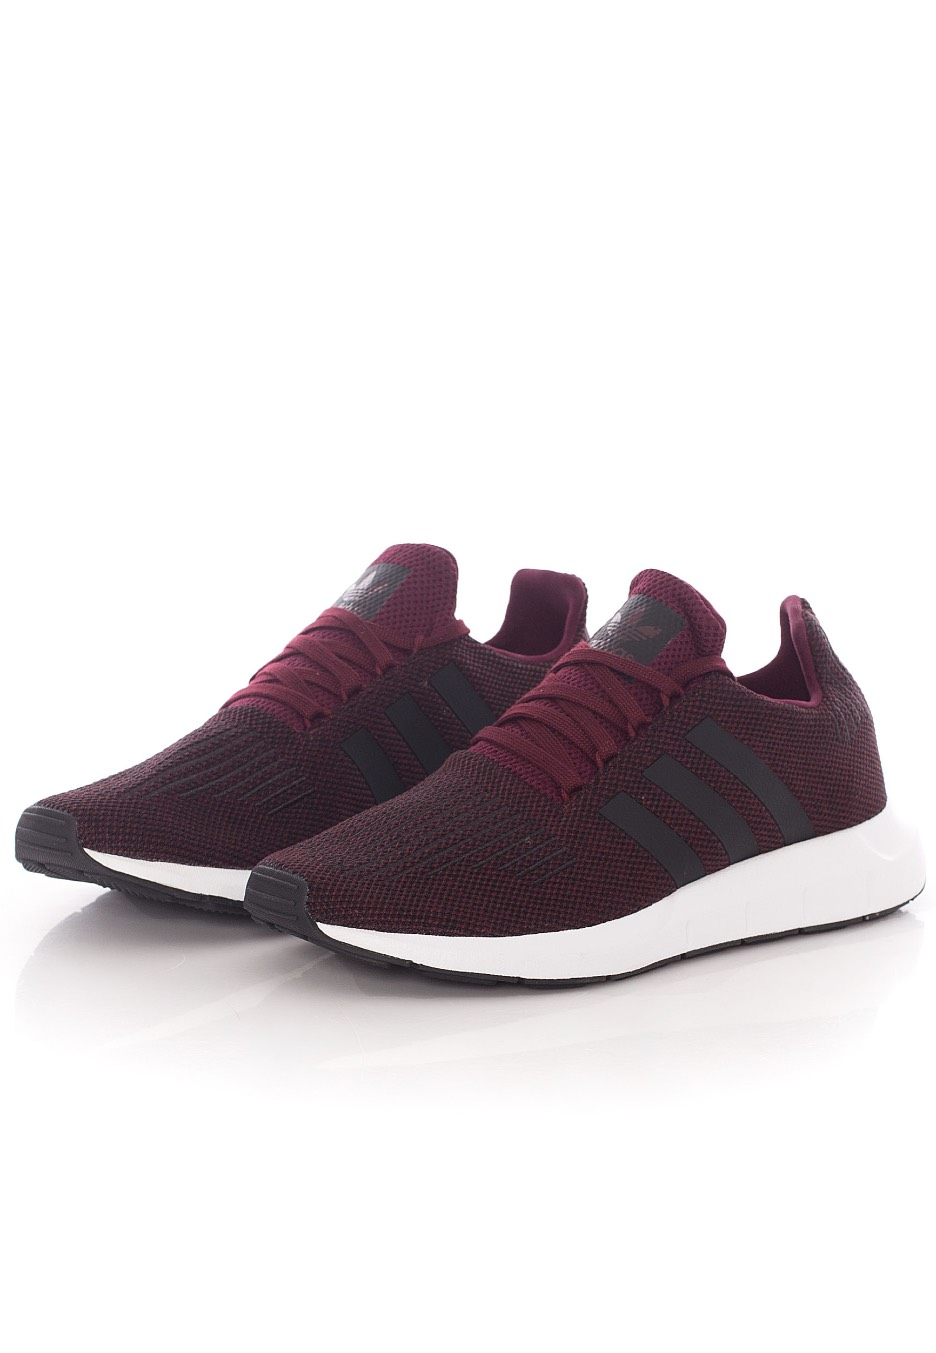 ... Adidas - Swift Run MaroonCore BlackFtw White - Shoes ...